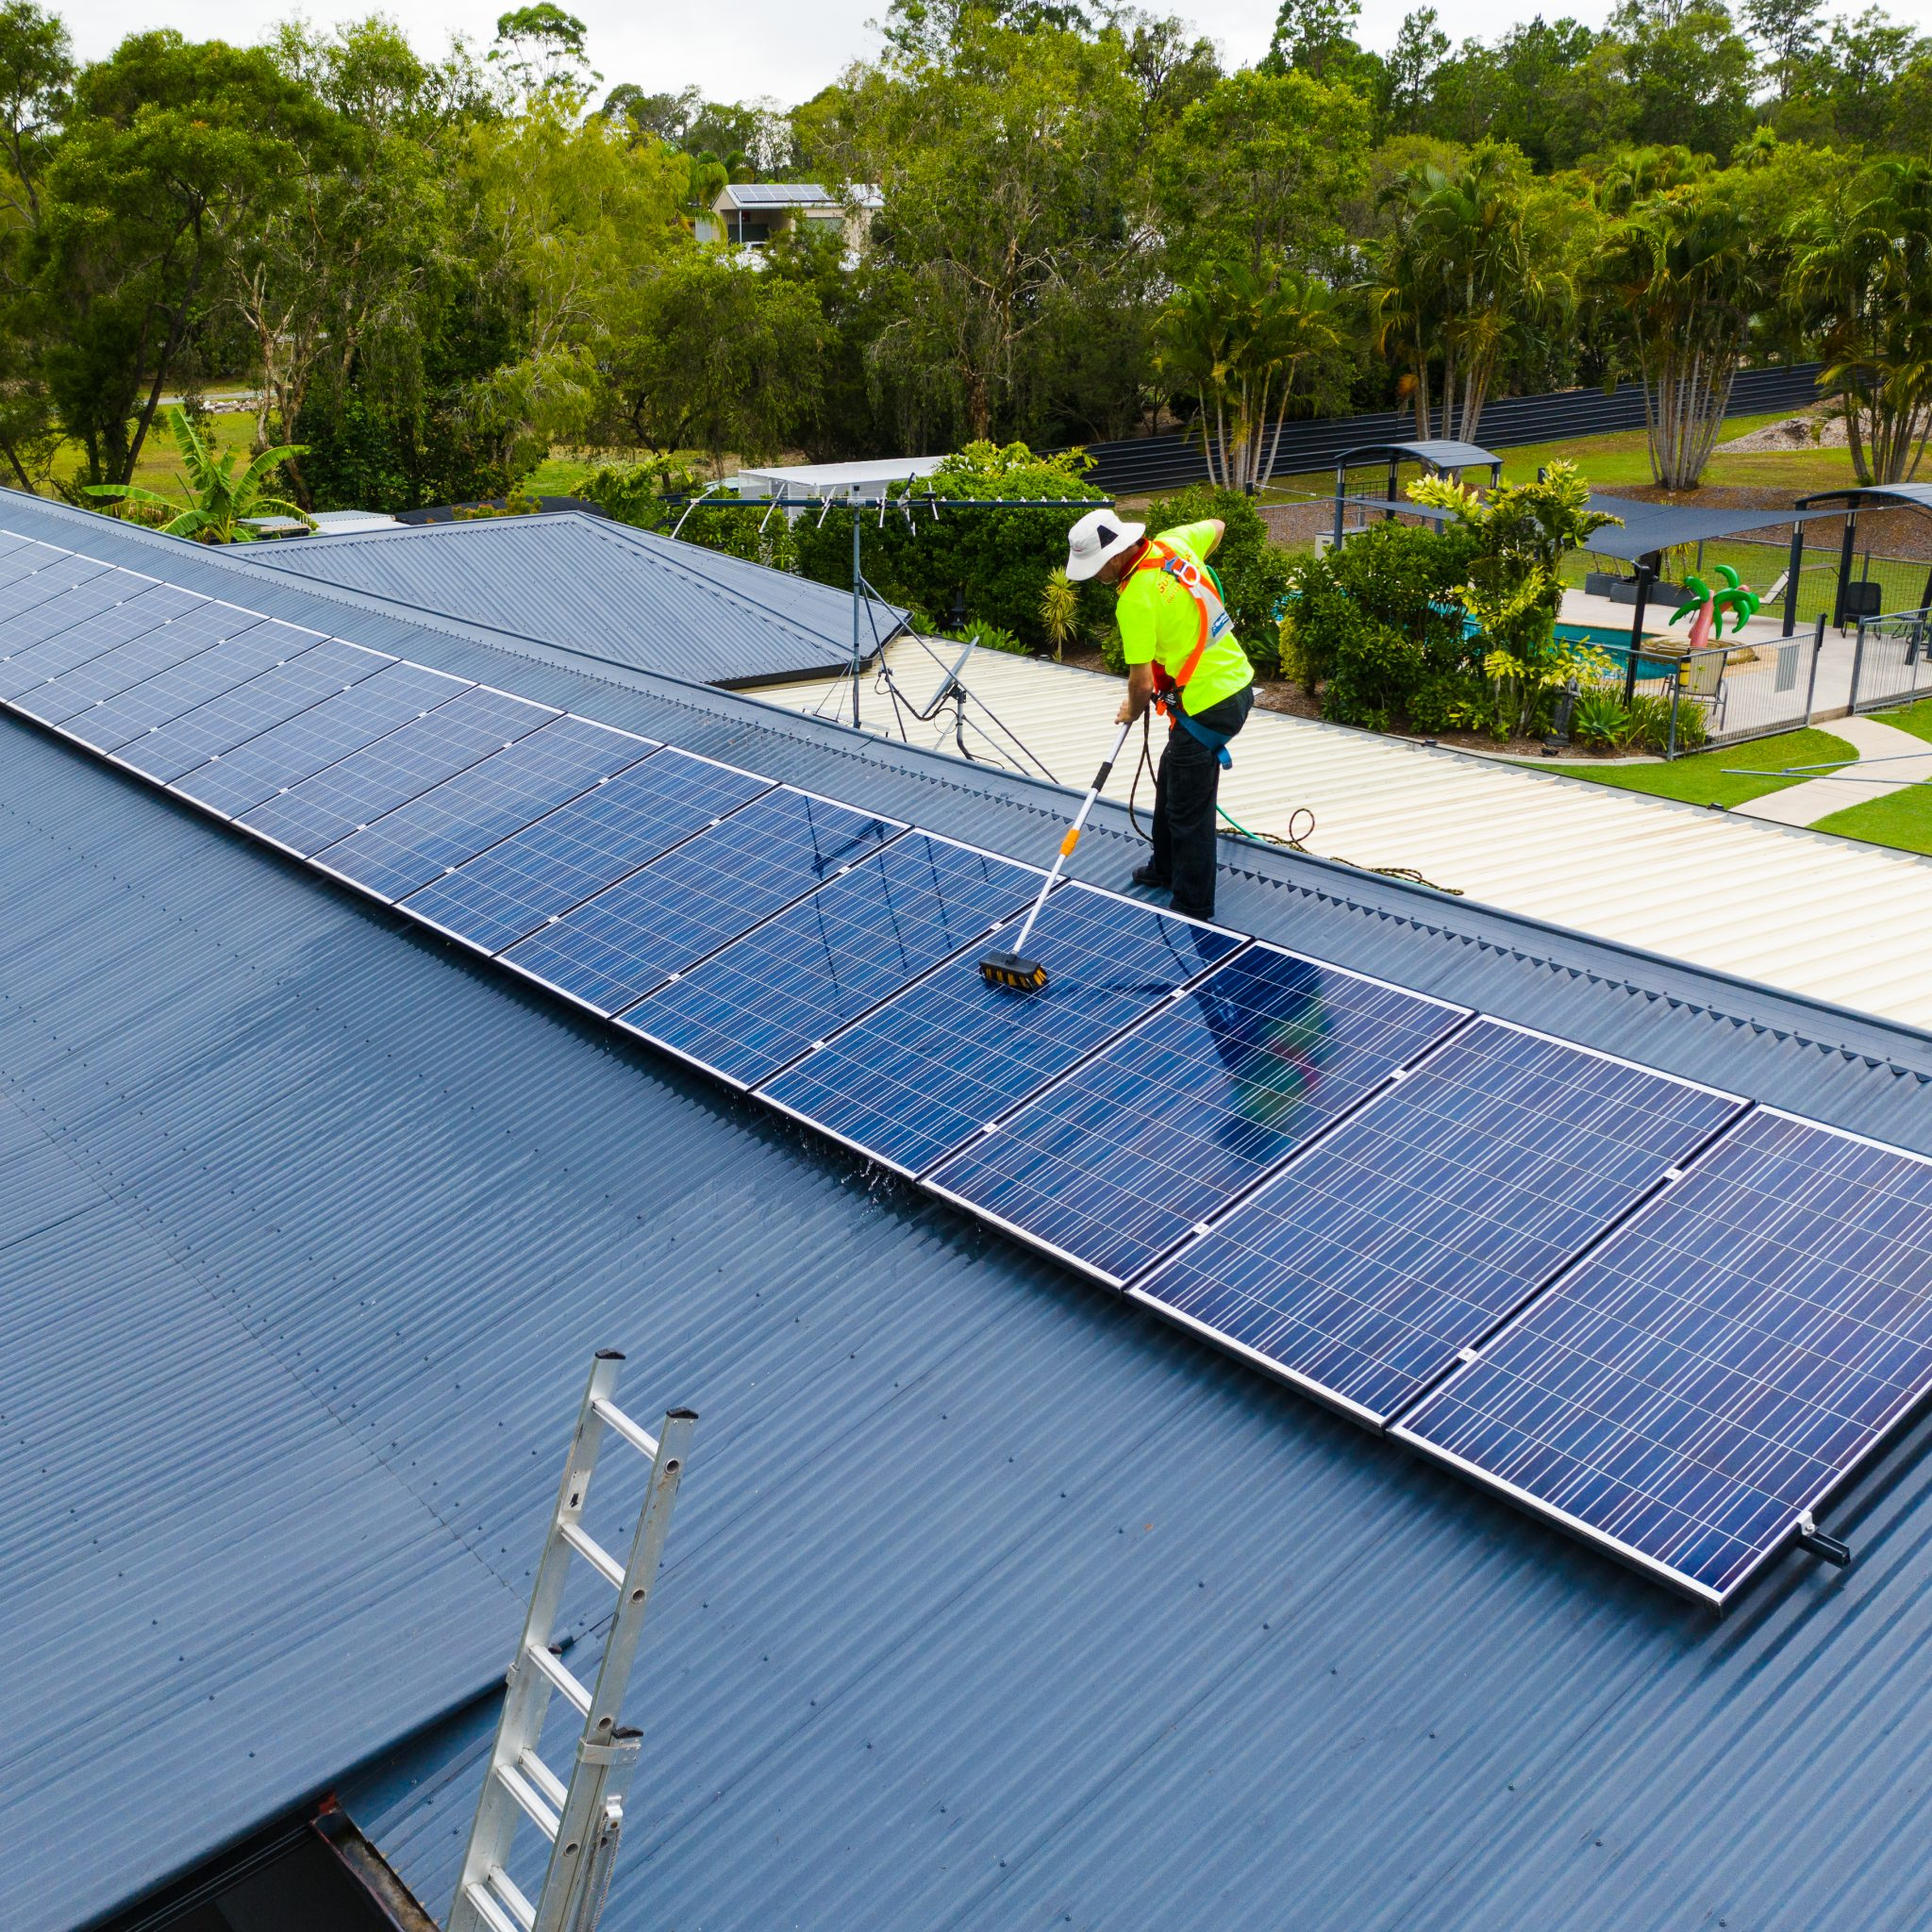 Clean solar panels are more energy efficient